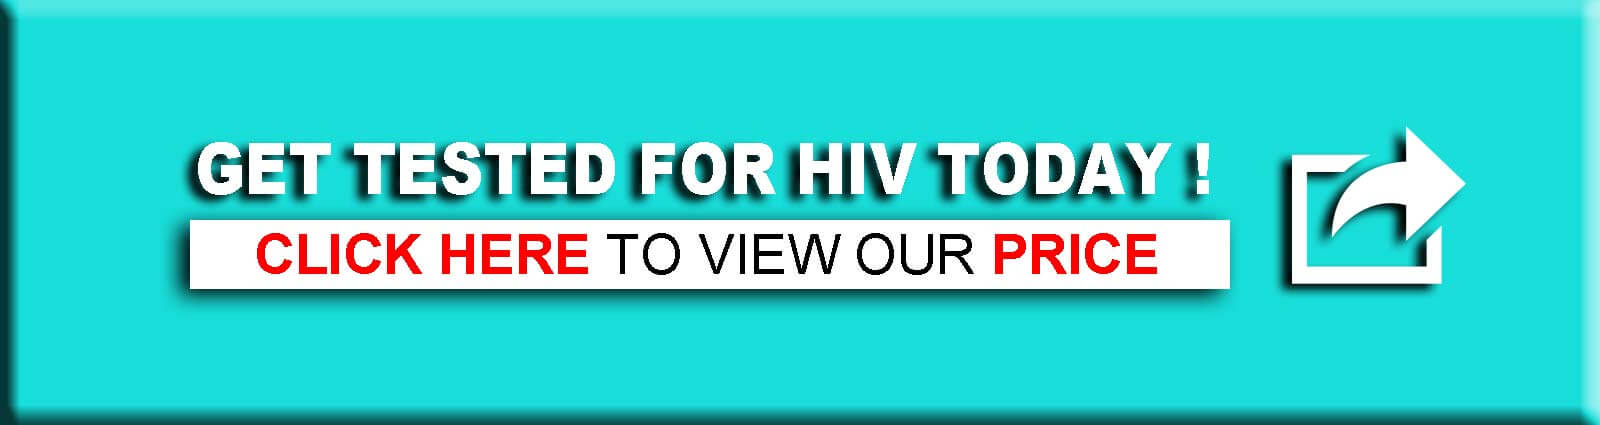 HIV TEST PACKAGES AND PRICE